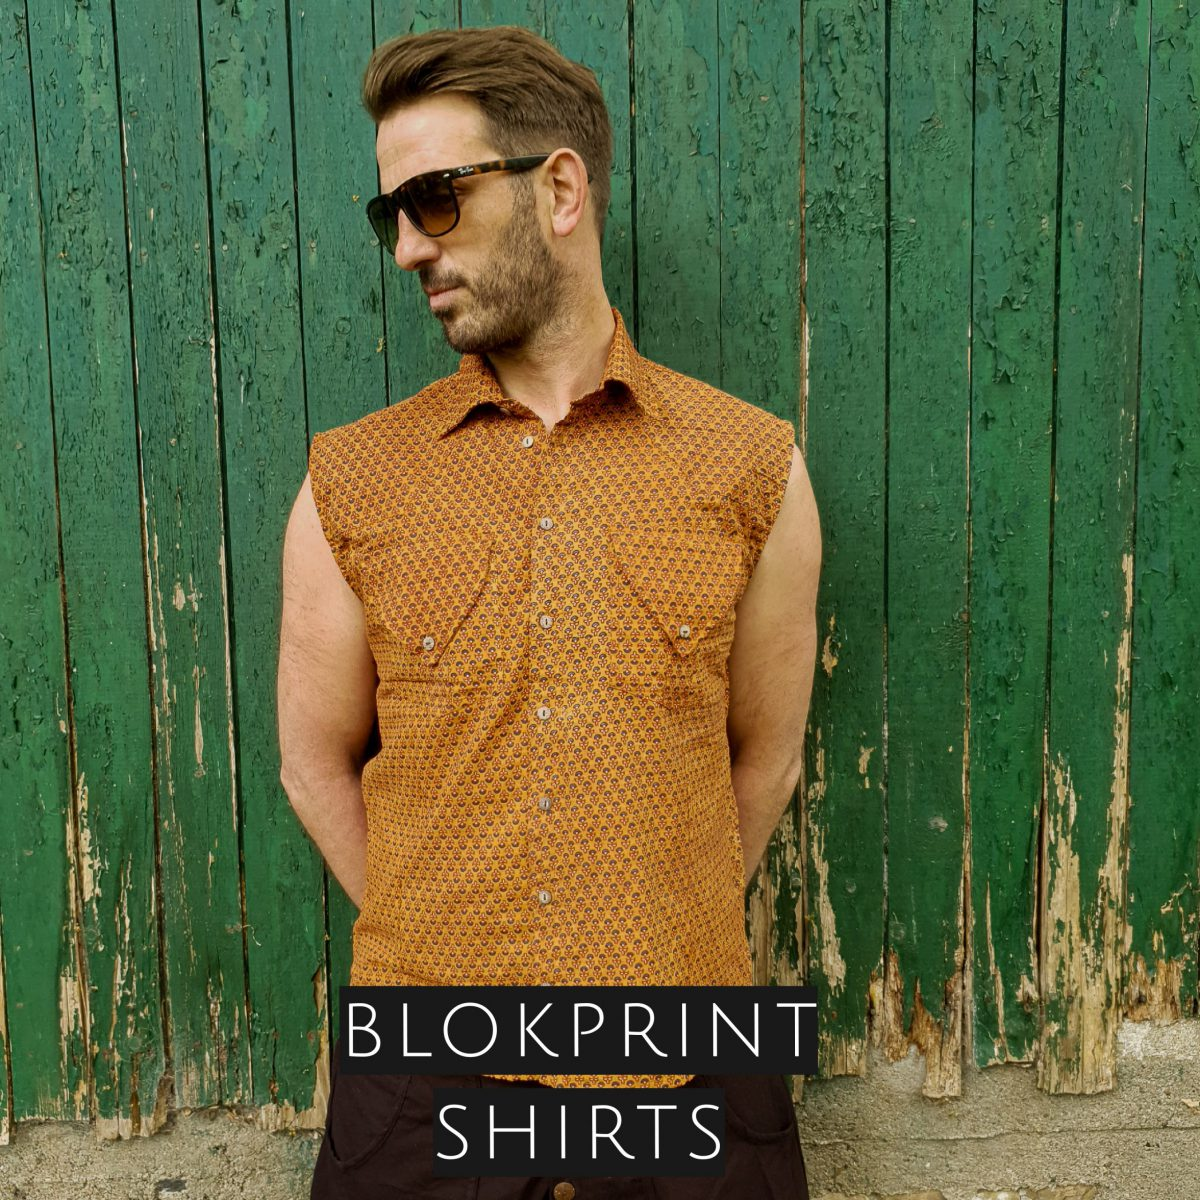 blokprint shirt